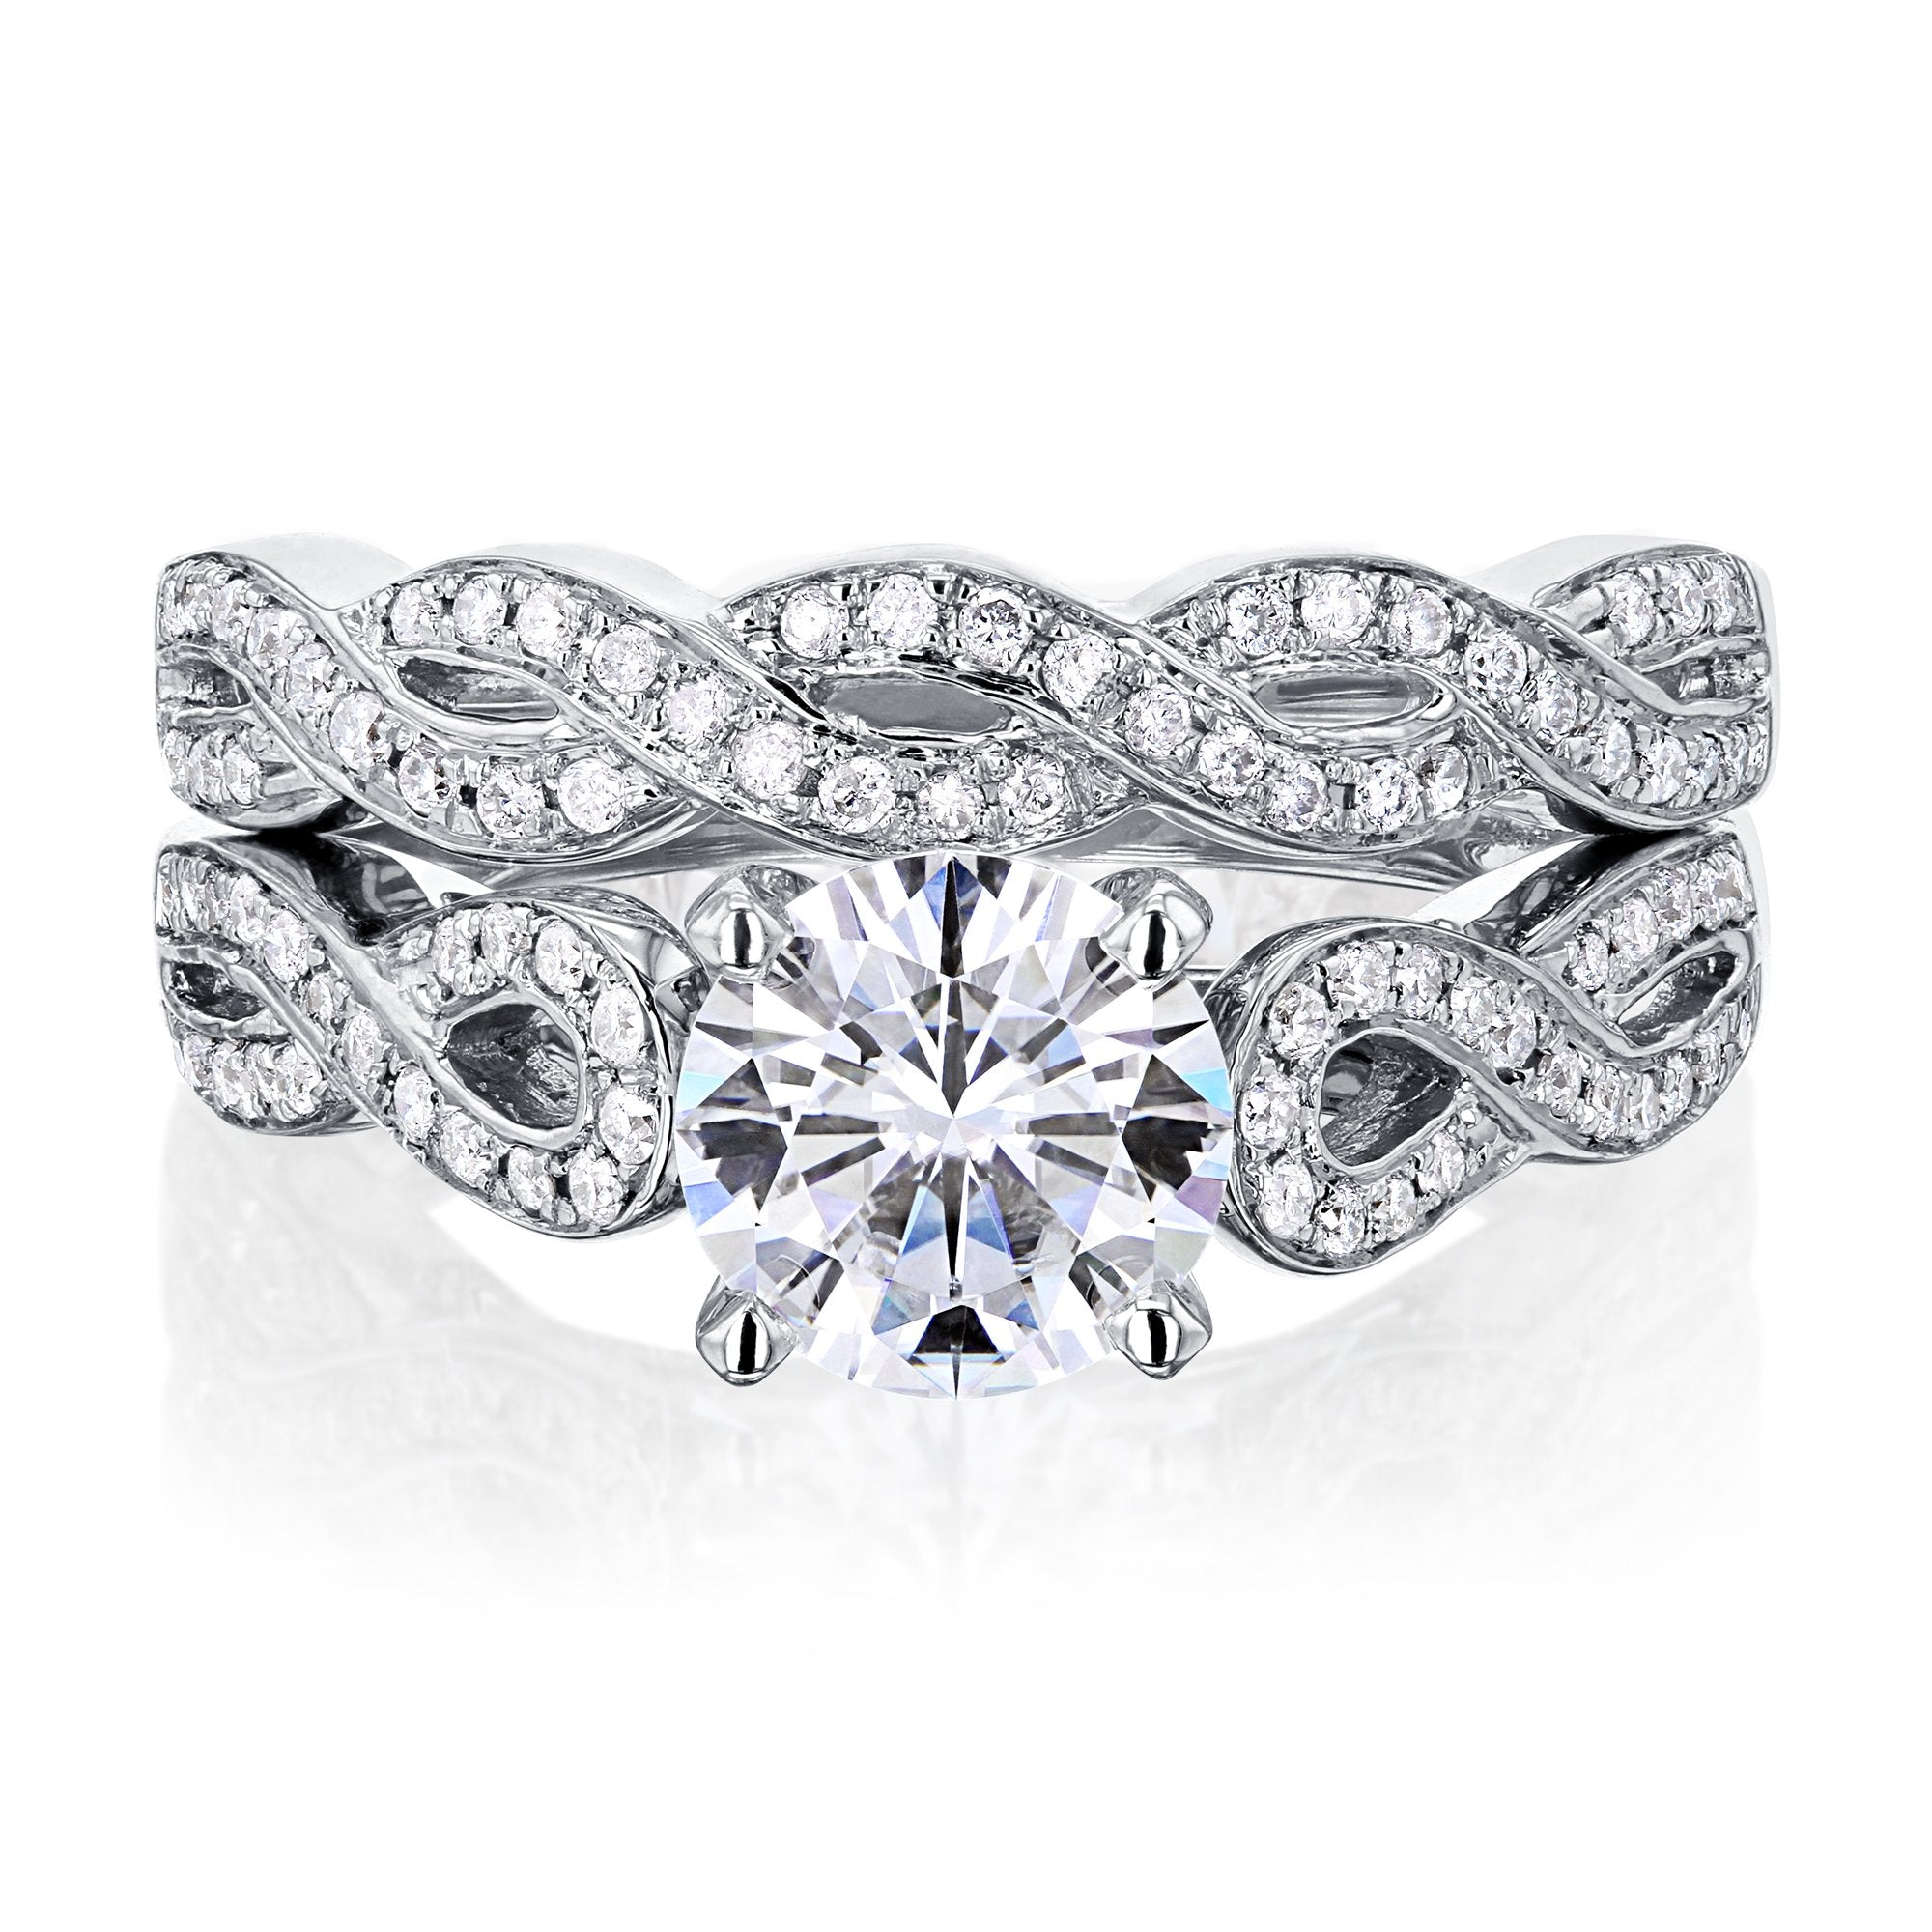 Promos 1ct Moissanite Snake Bridal Set - 10.0 Kobelli F-G